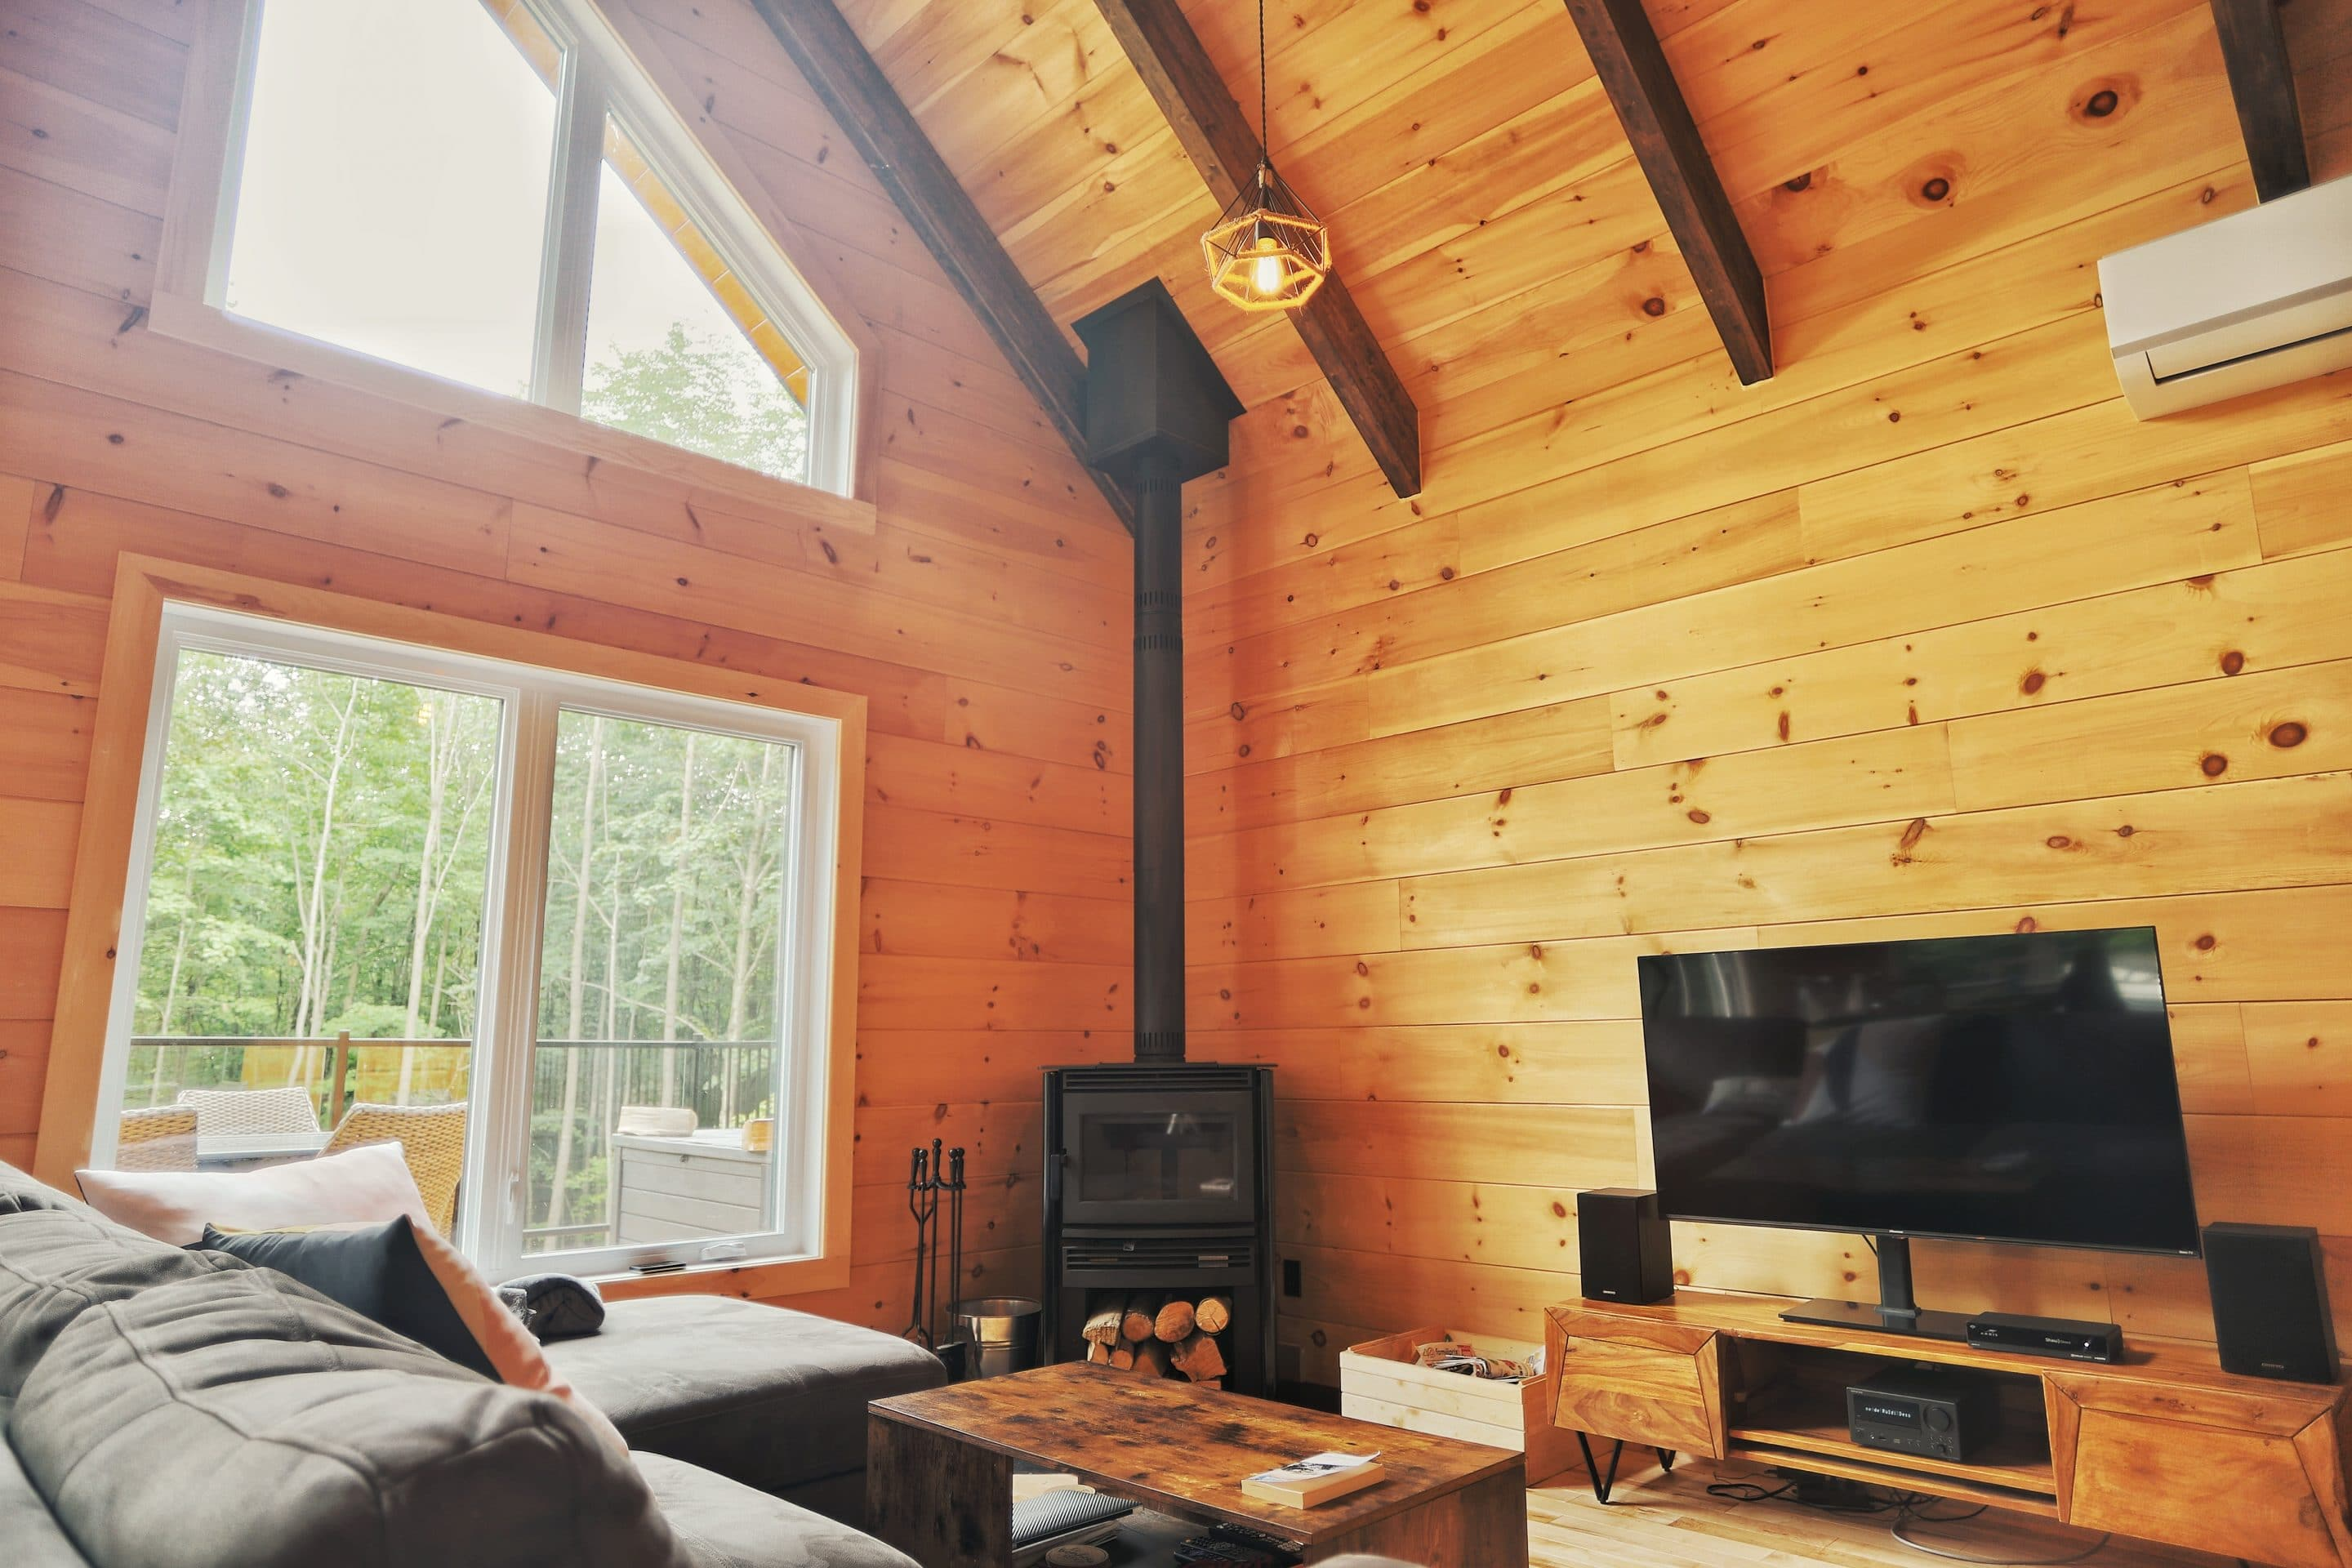 Photos of the chalet, number 8